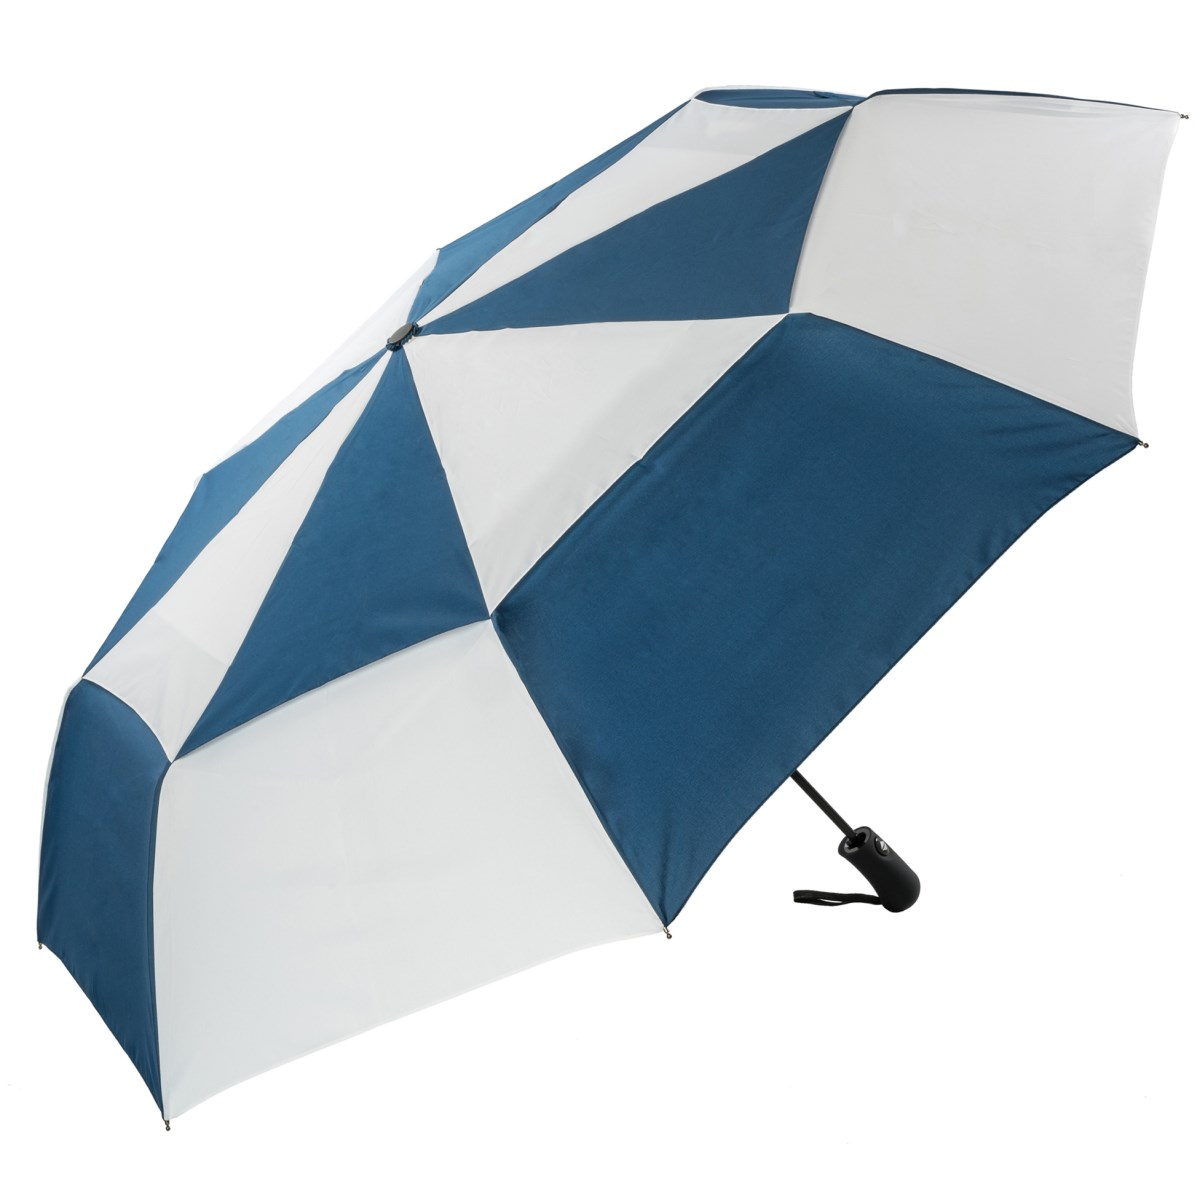 XL Compact Navy and White FibreAuto Golf Umbrella (31713)